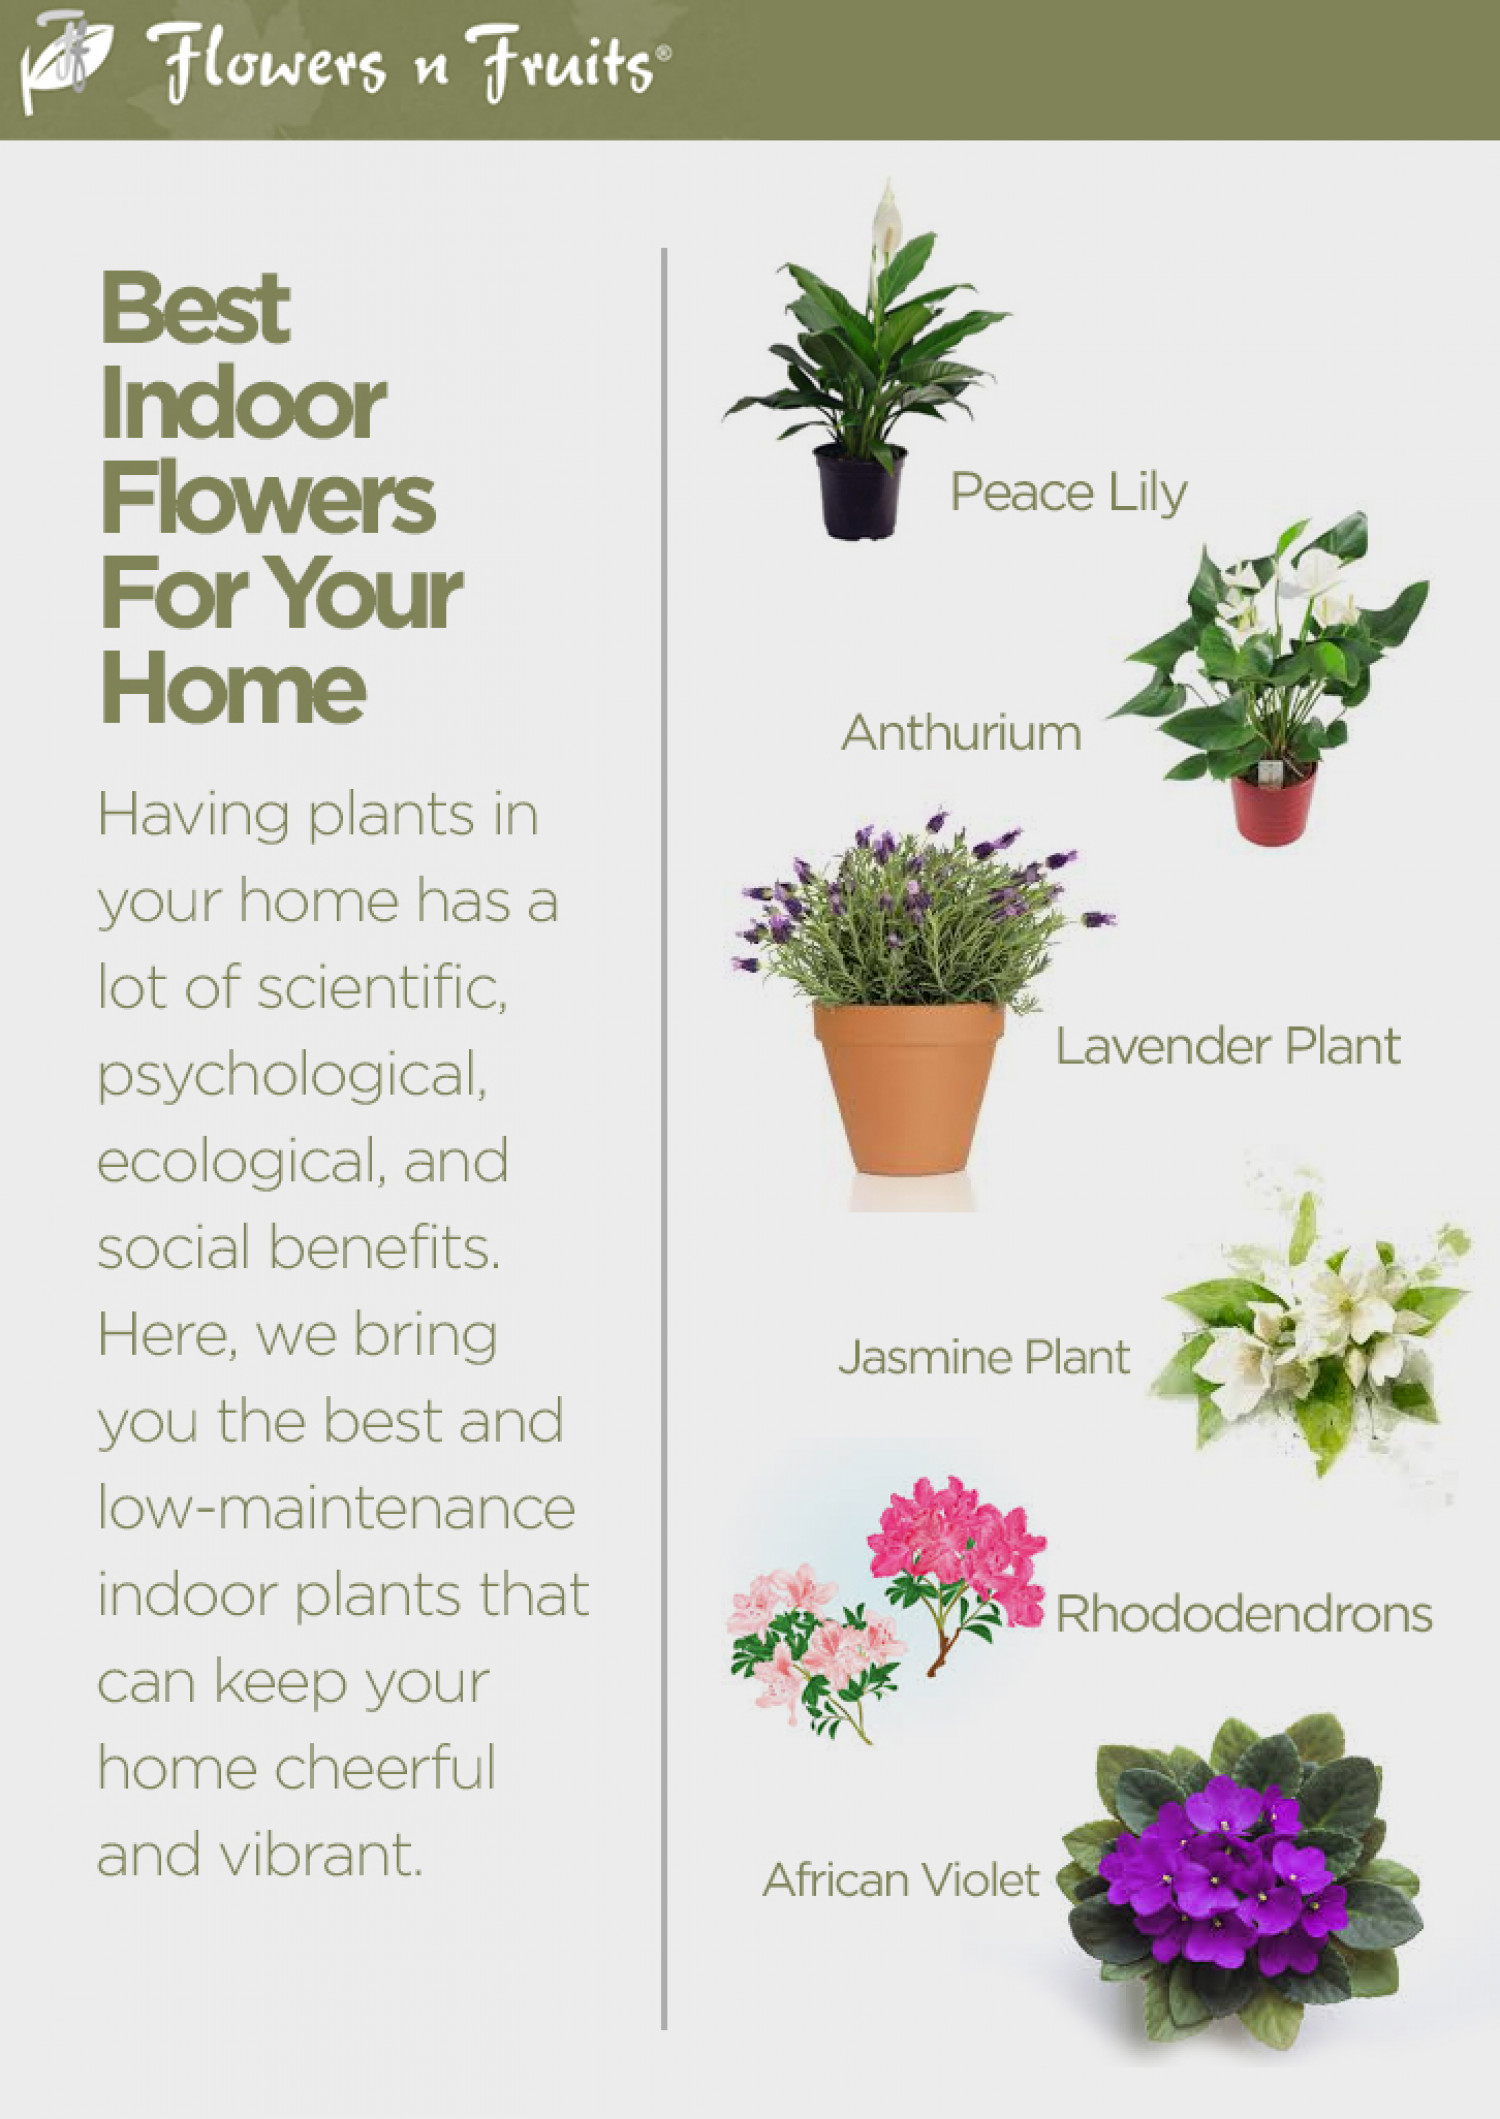 Best Indoor Flowers For Your Home Infographic